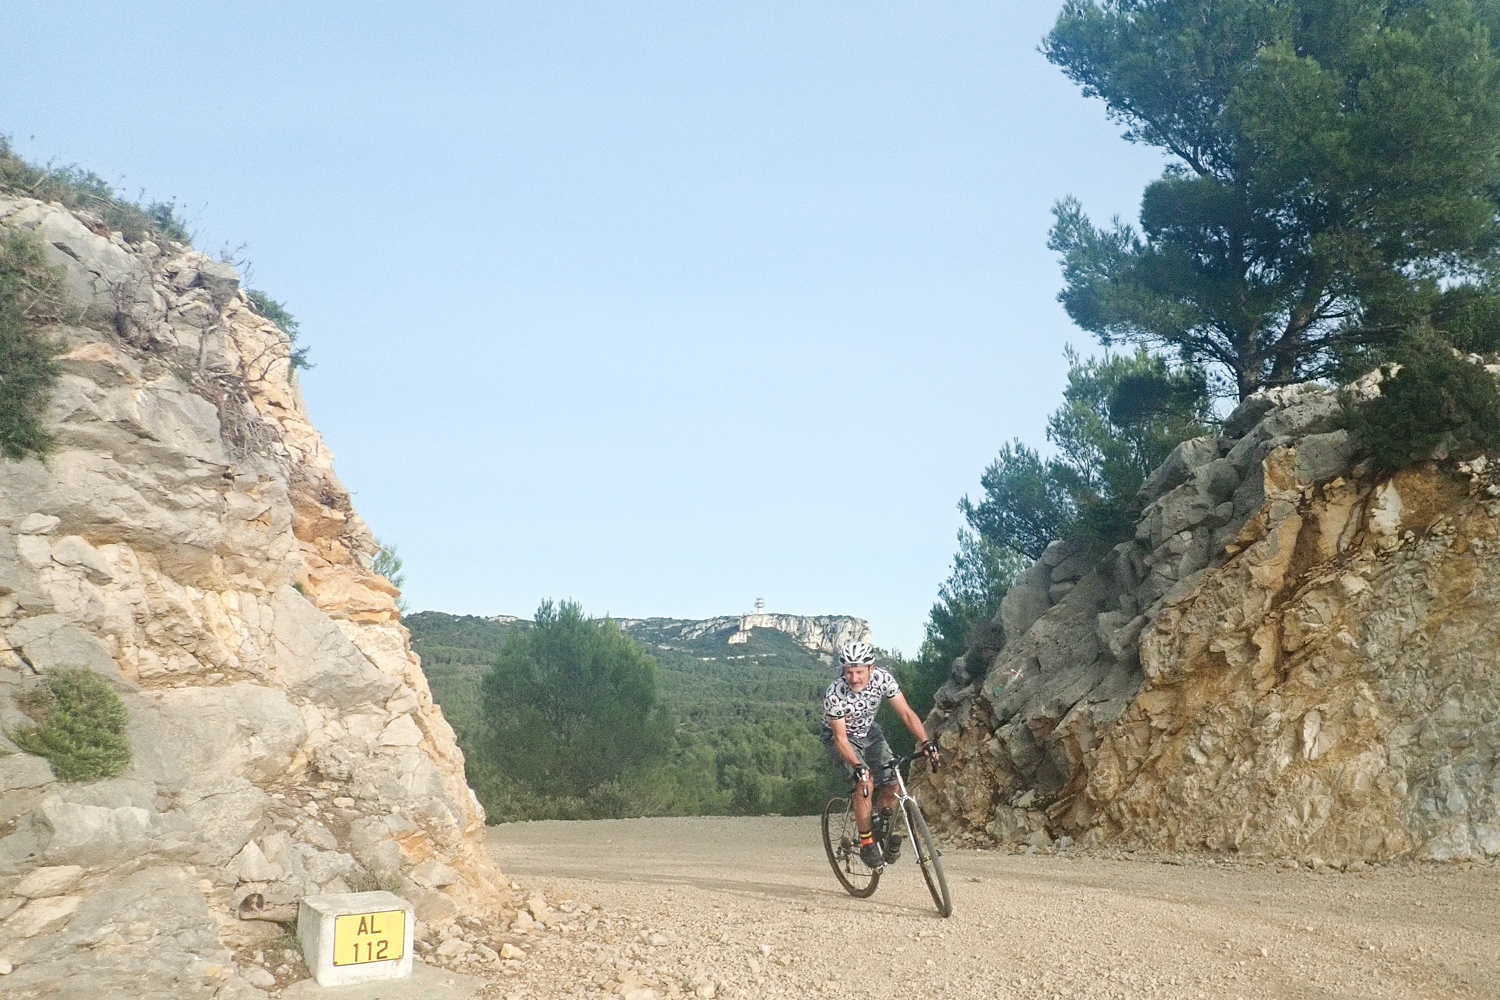 Teravail Cannonball gravel tires tyres cornering